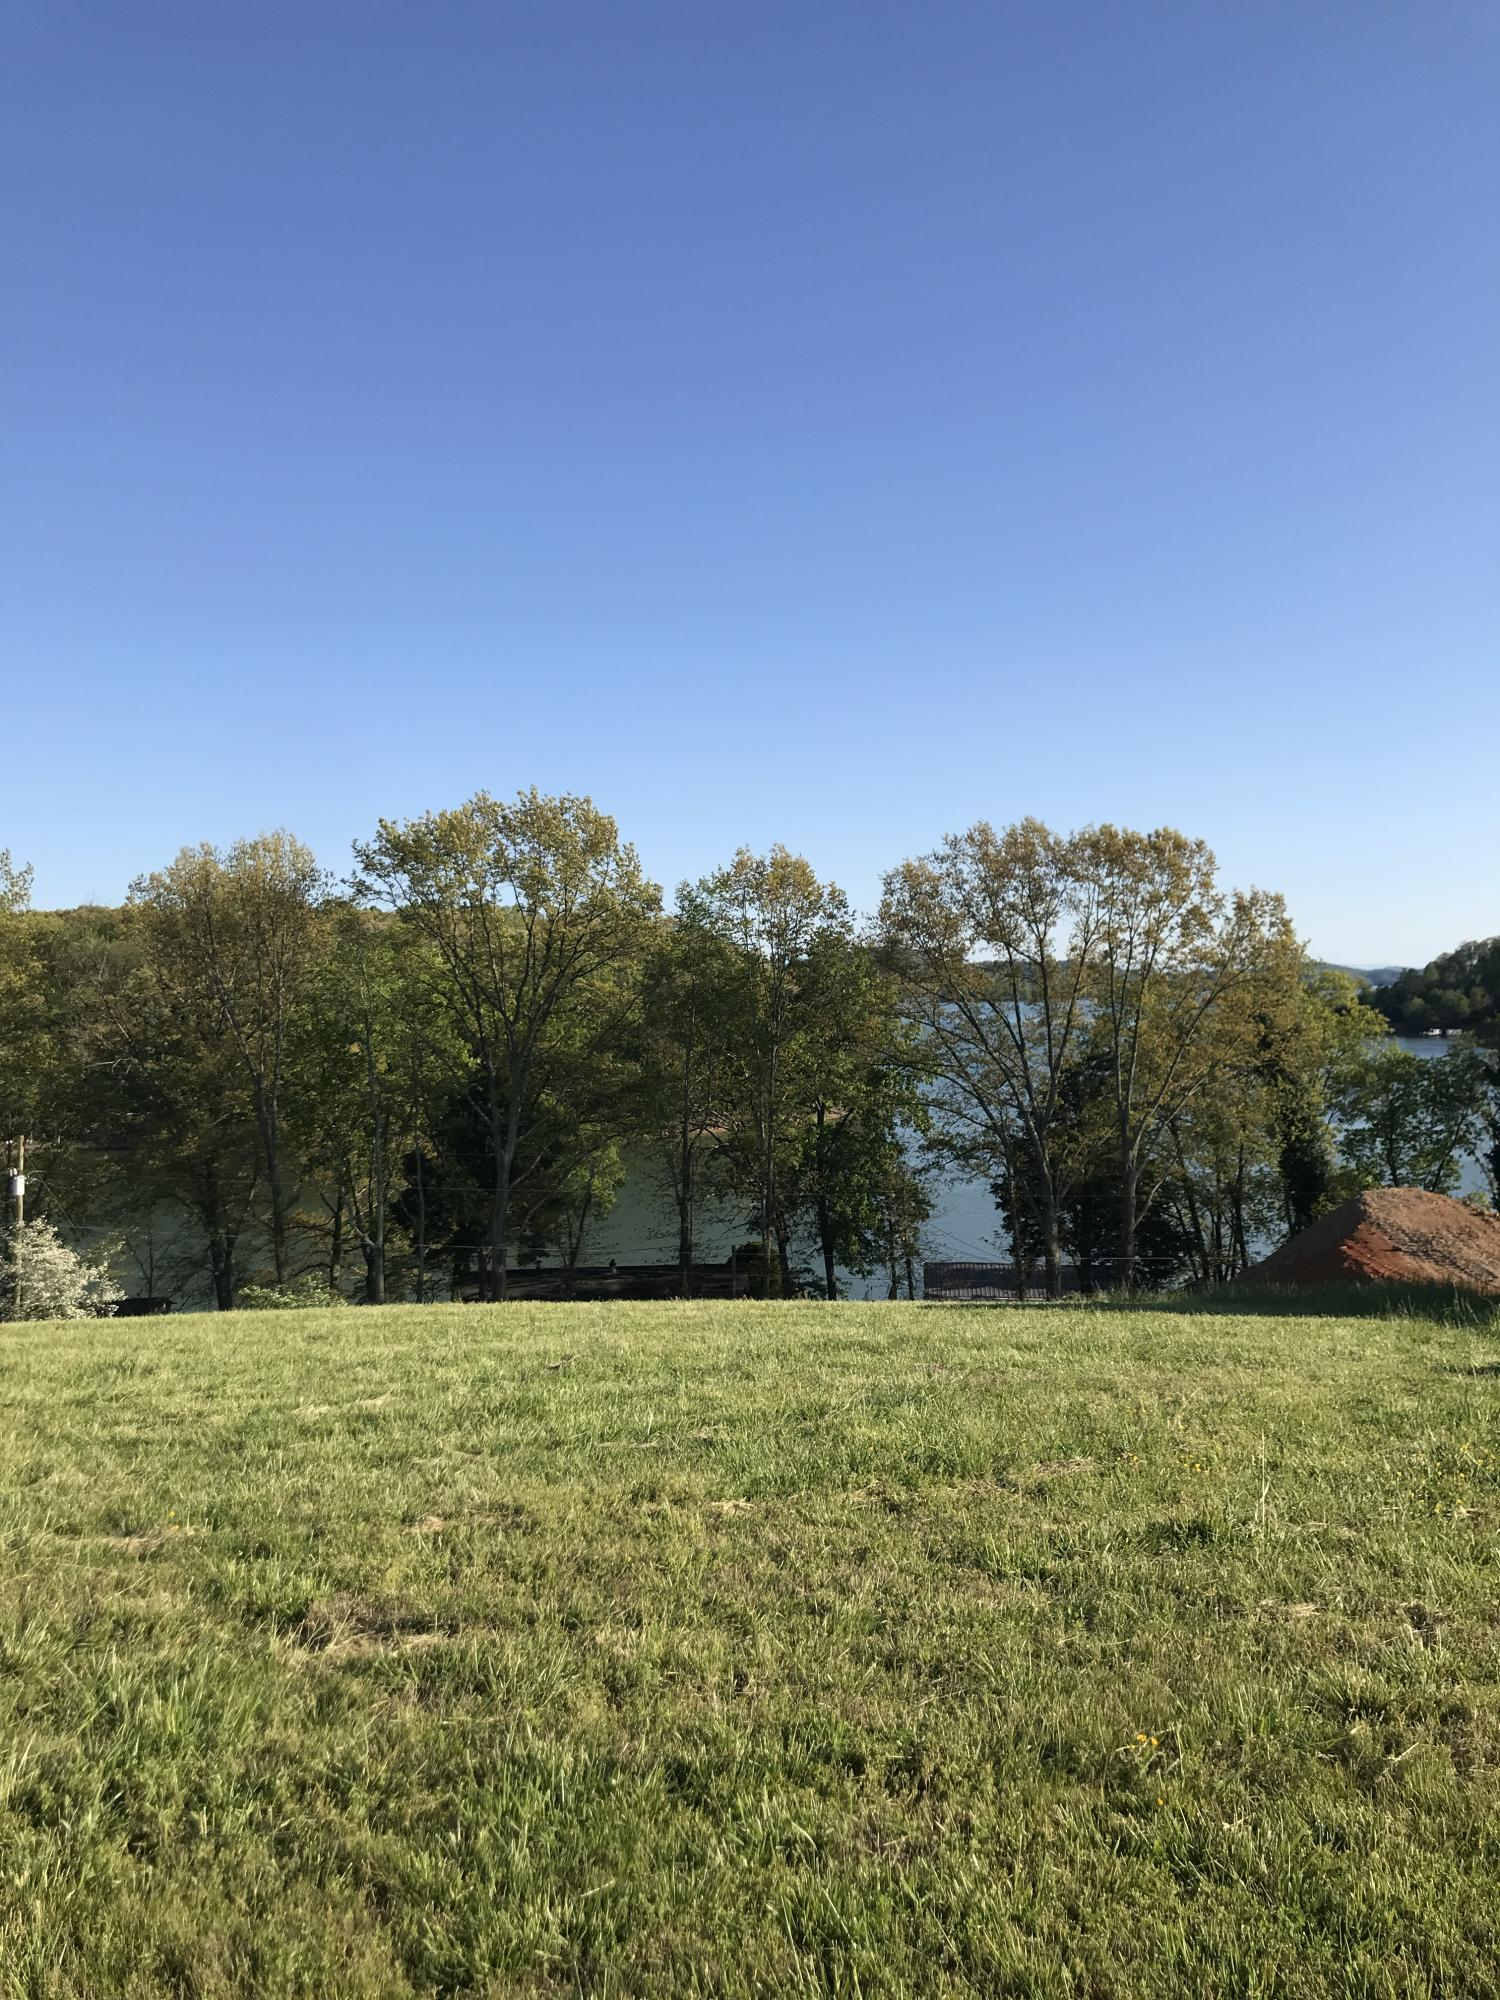 Lot 88 Shiloh Springs, Rutledge, Tennessee 37861, ,Lots & Acreage,For Sale,Shiloh Springs,1040020